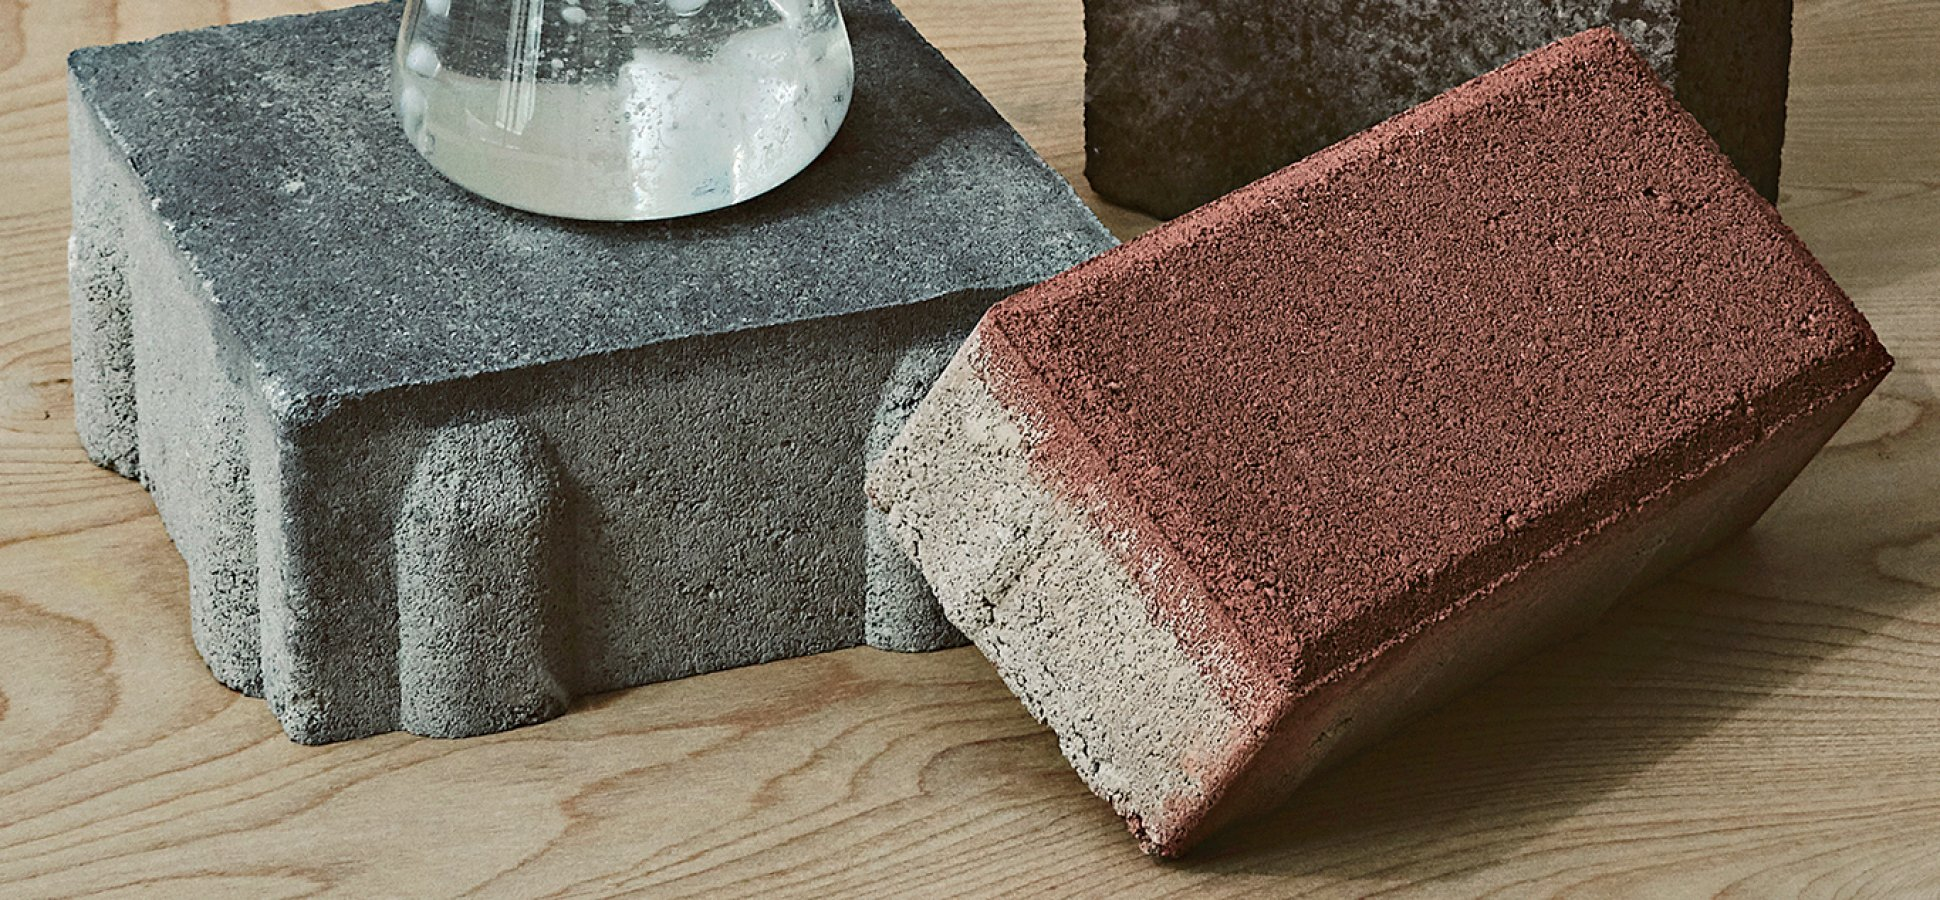 Cement Has a Huge Carbon Footprint. Solidia Technologies Can Cut It by 70 Percent